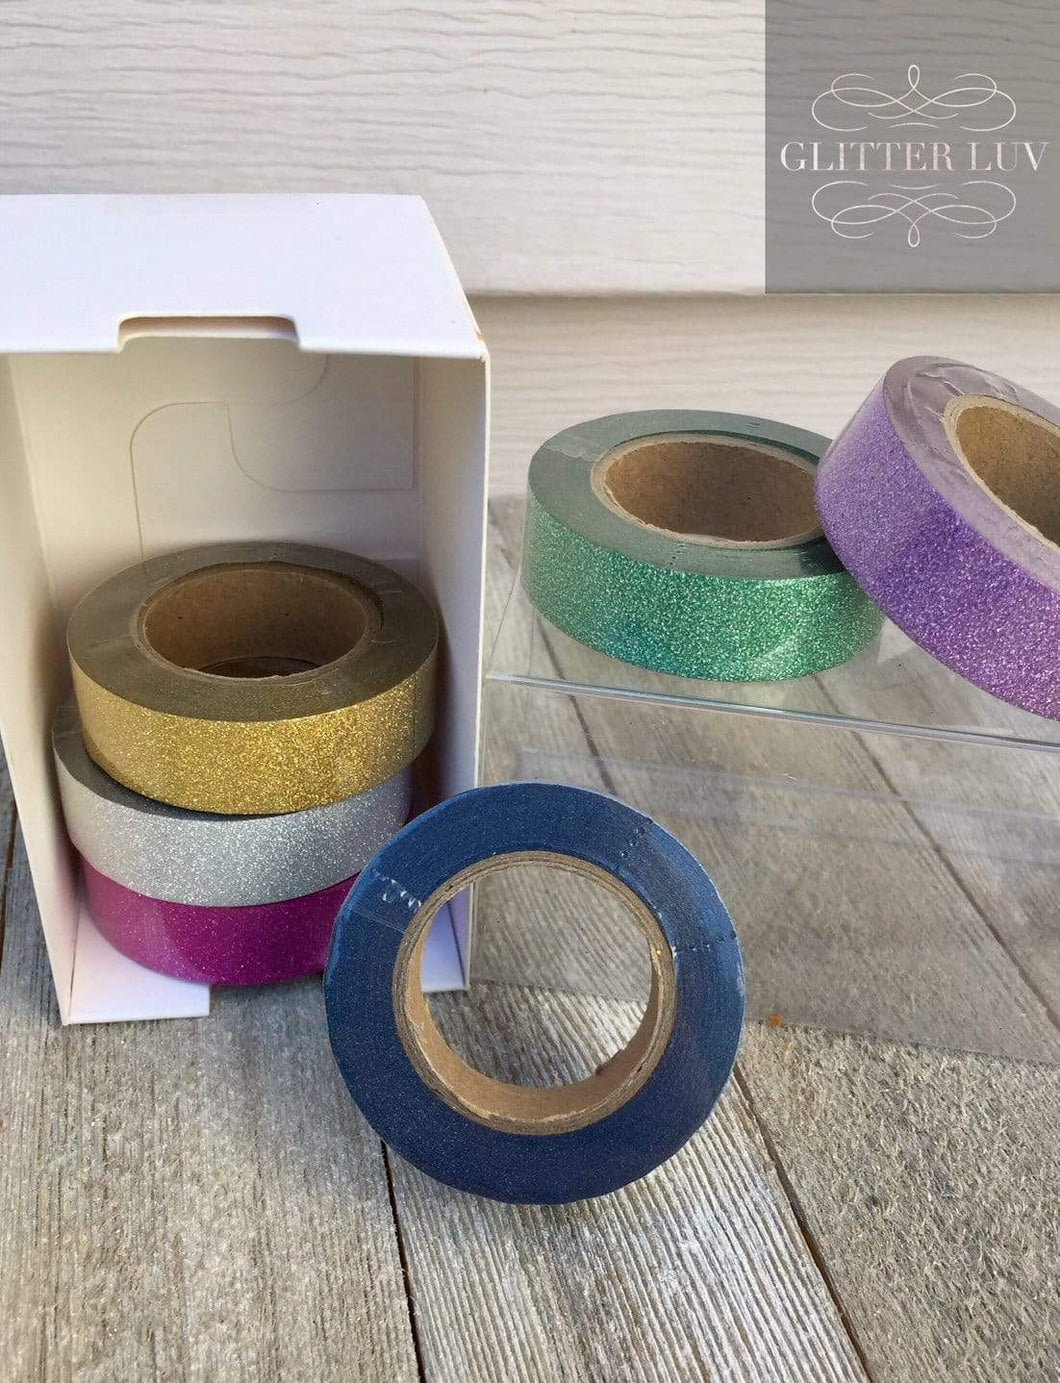 Glitter Washi Tape - 6 Pack